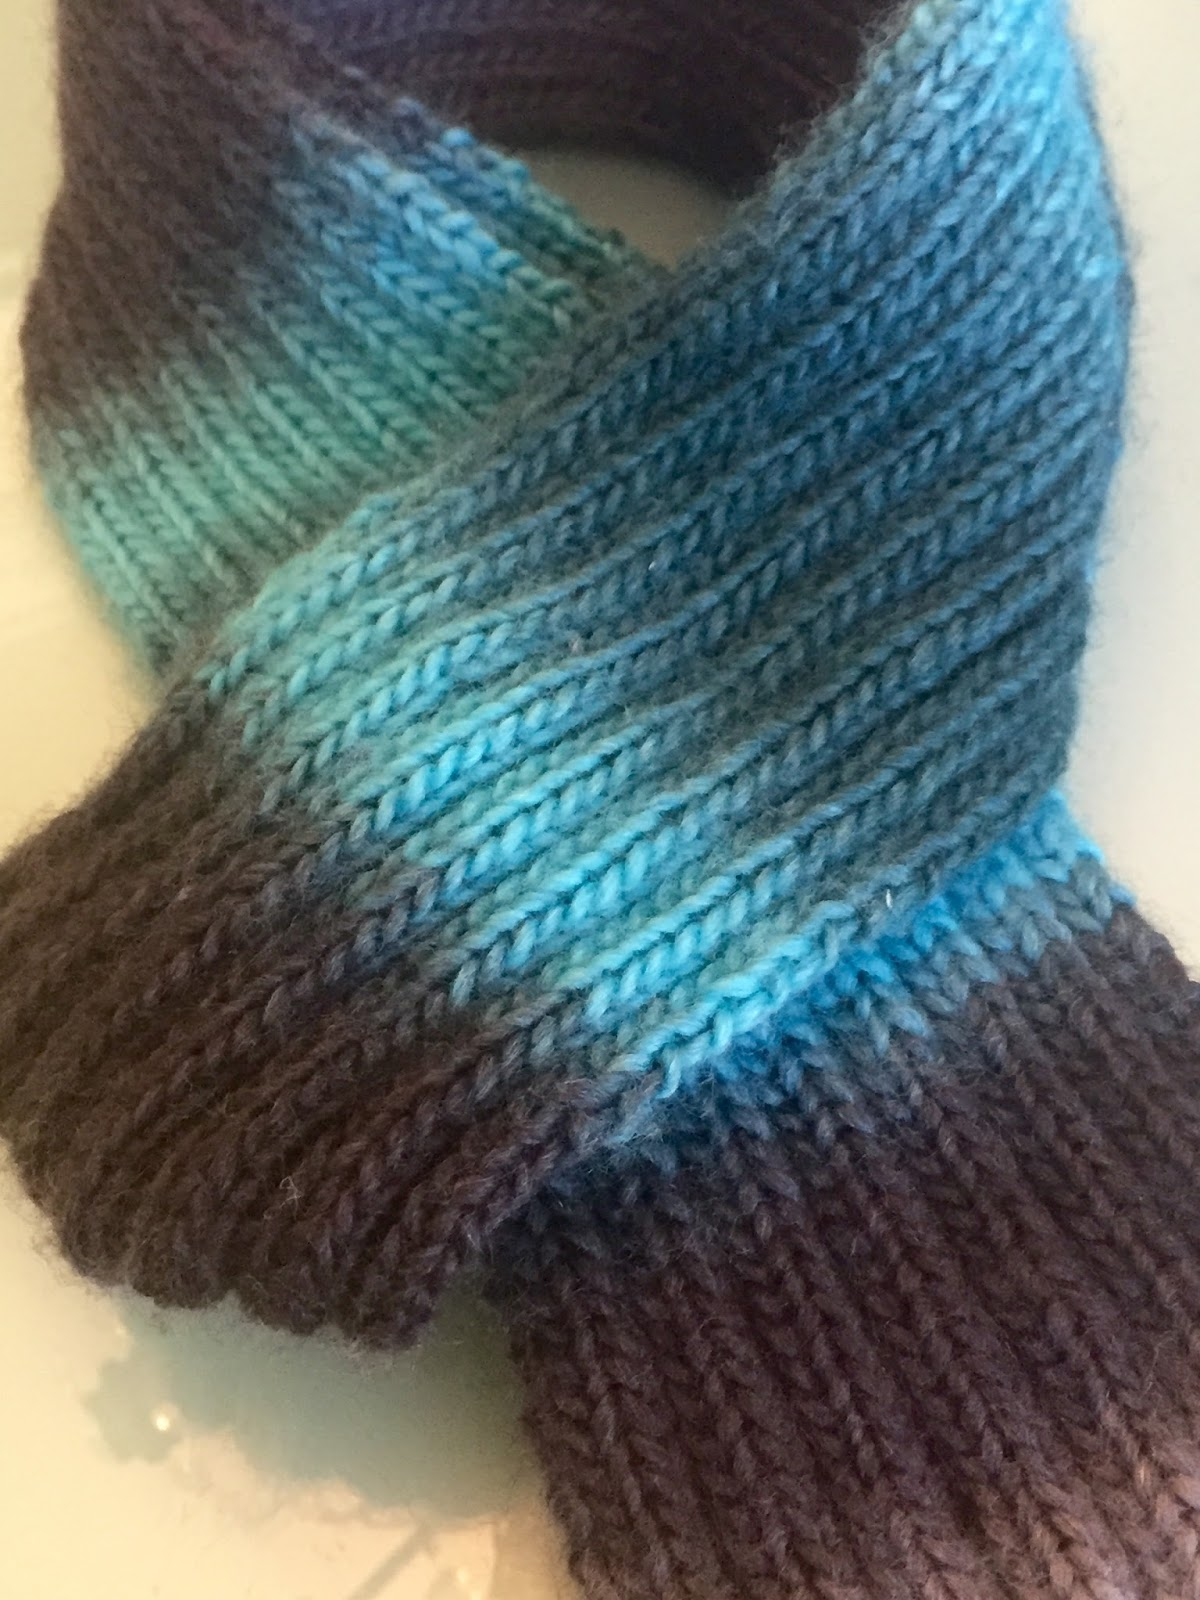 Purl One Knit Two Knit Two Purl Two Rib Scarf